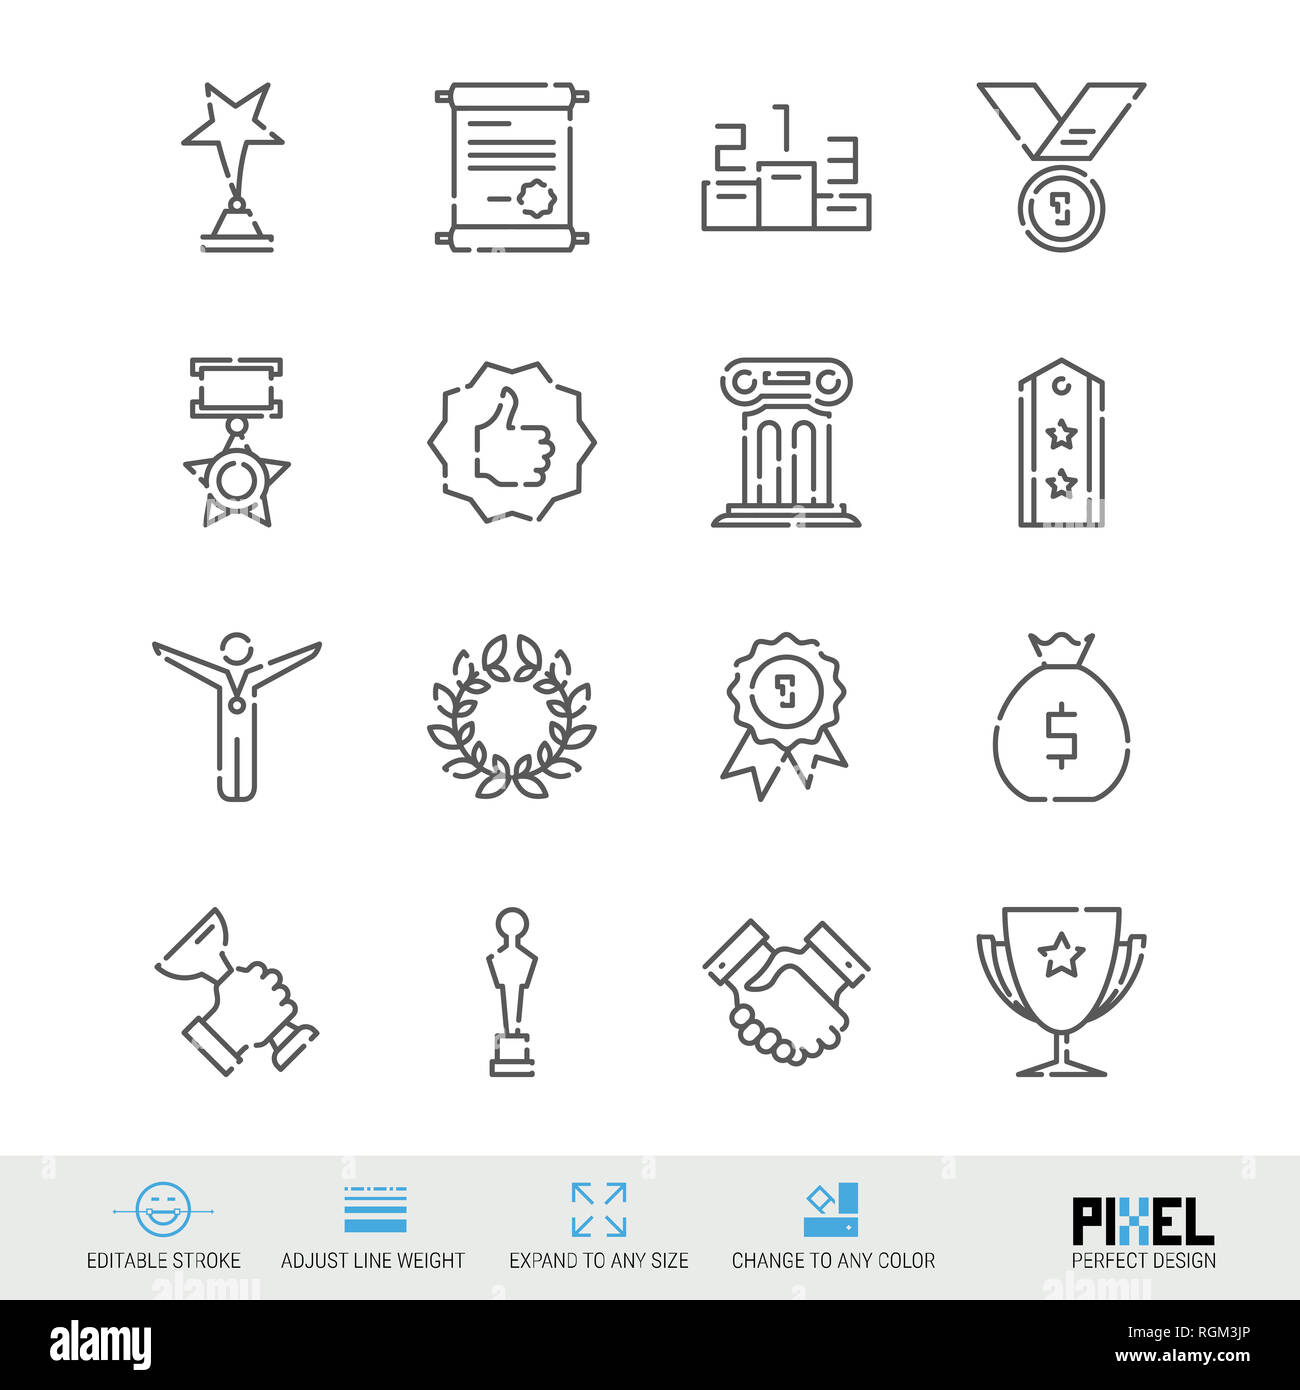 Line Icon Set. Awards Related Linear Icons. Success, Achievment Symbols, Pictograms, Signs. Pixel Perfect Design. Editable Stroke. Adjust Line Weight. - Stock Image